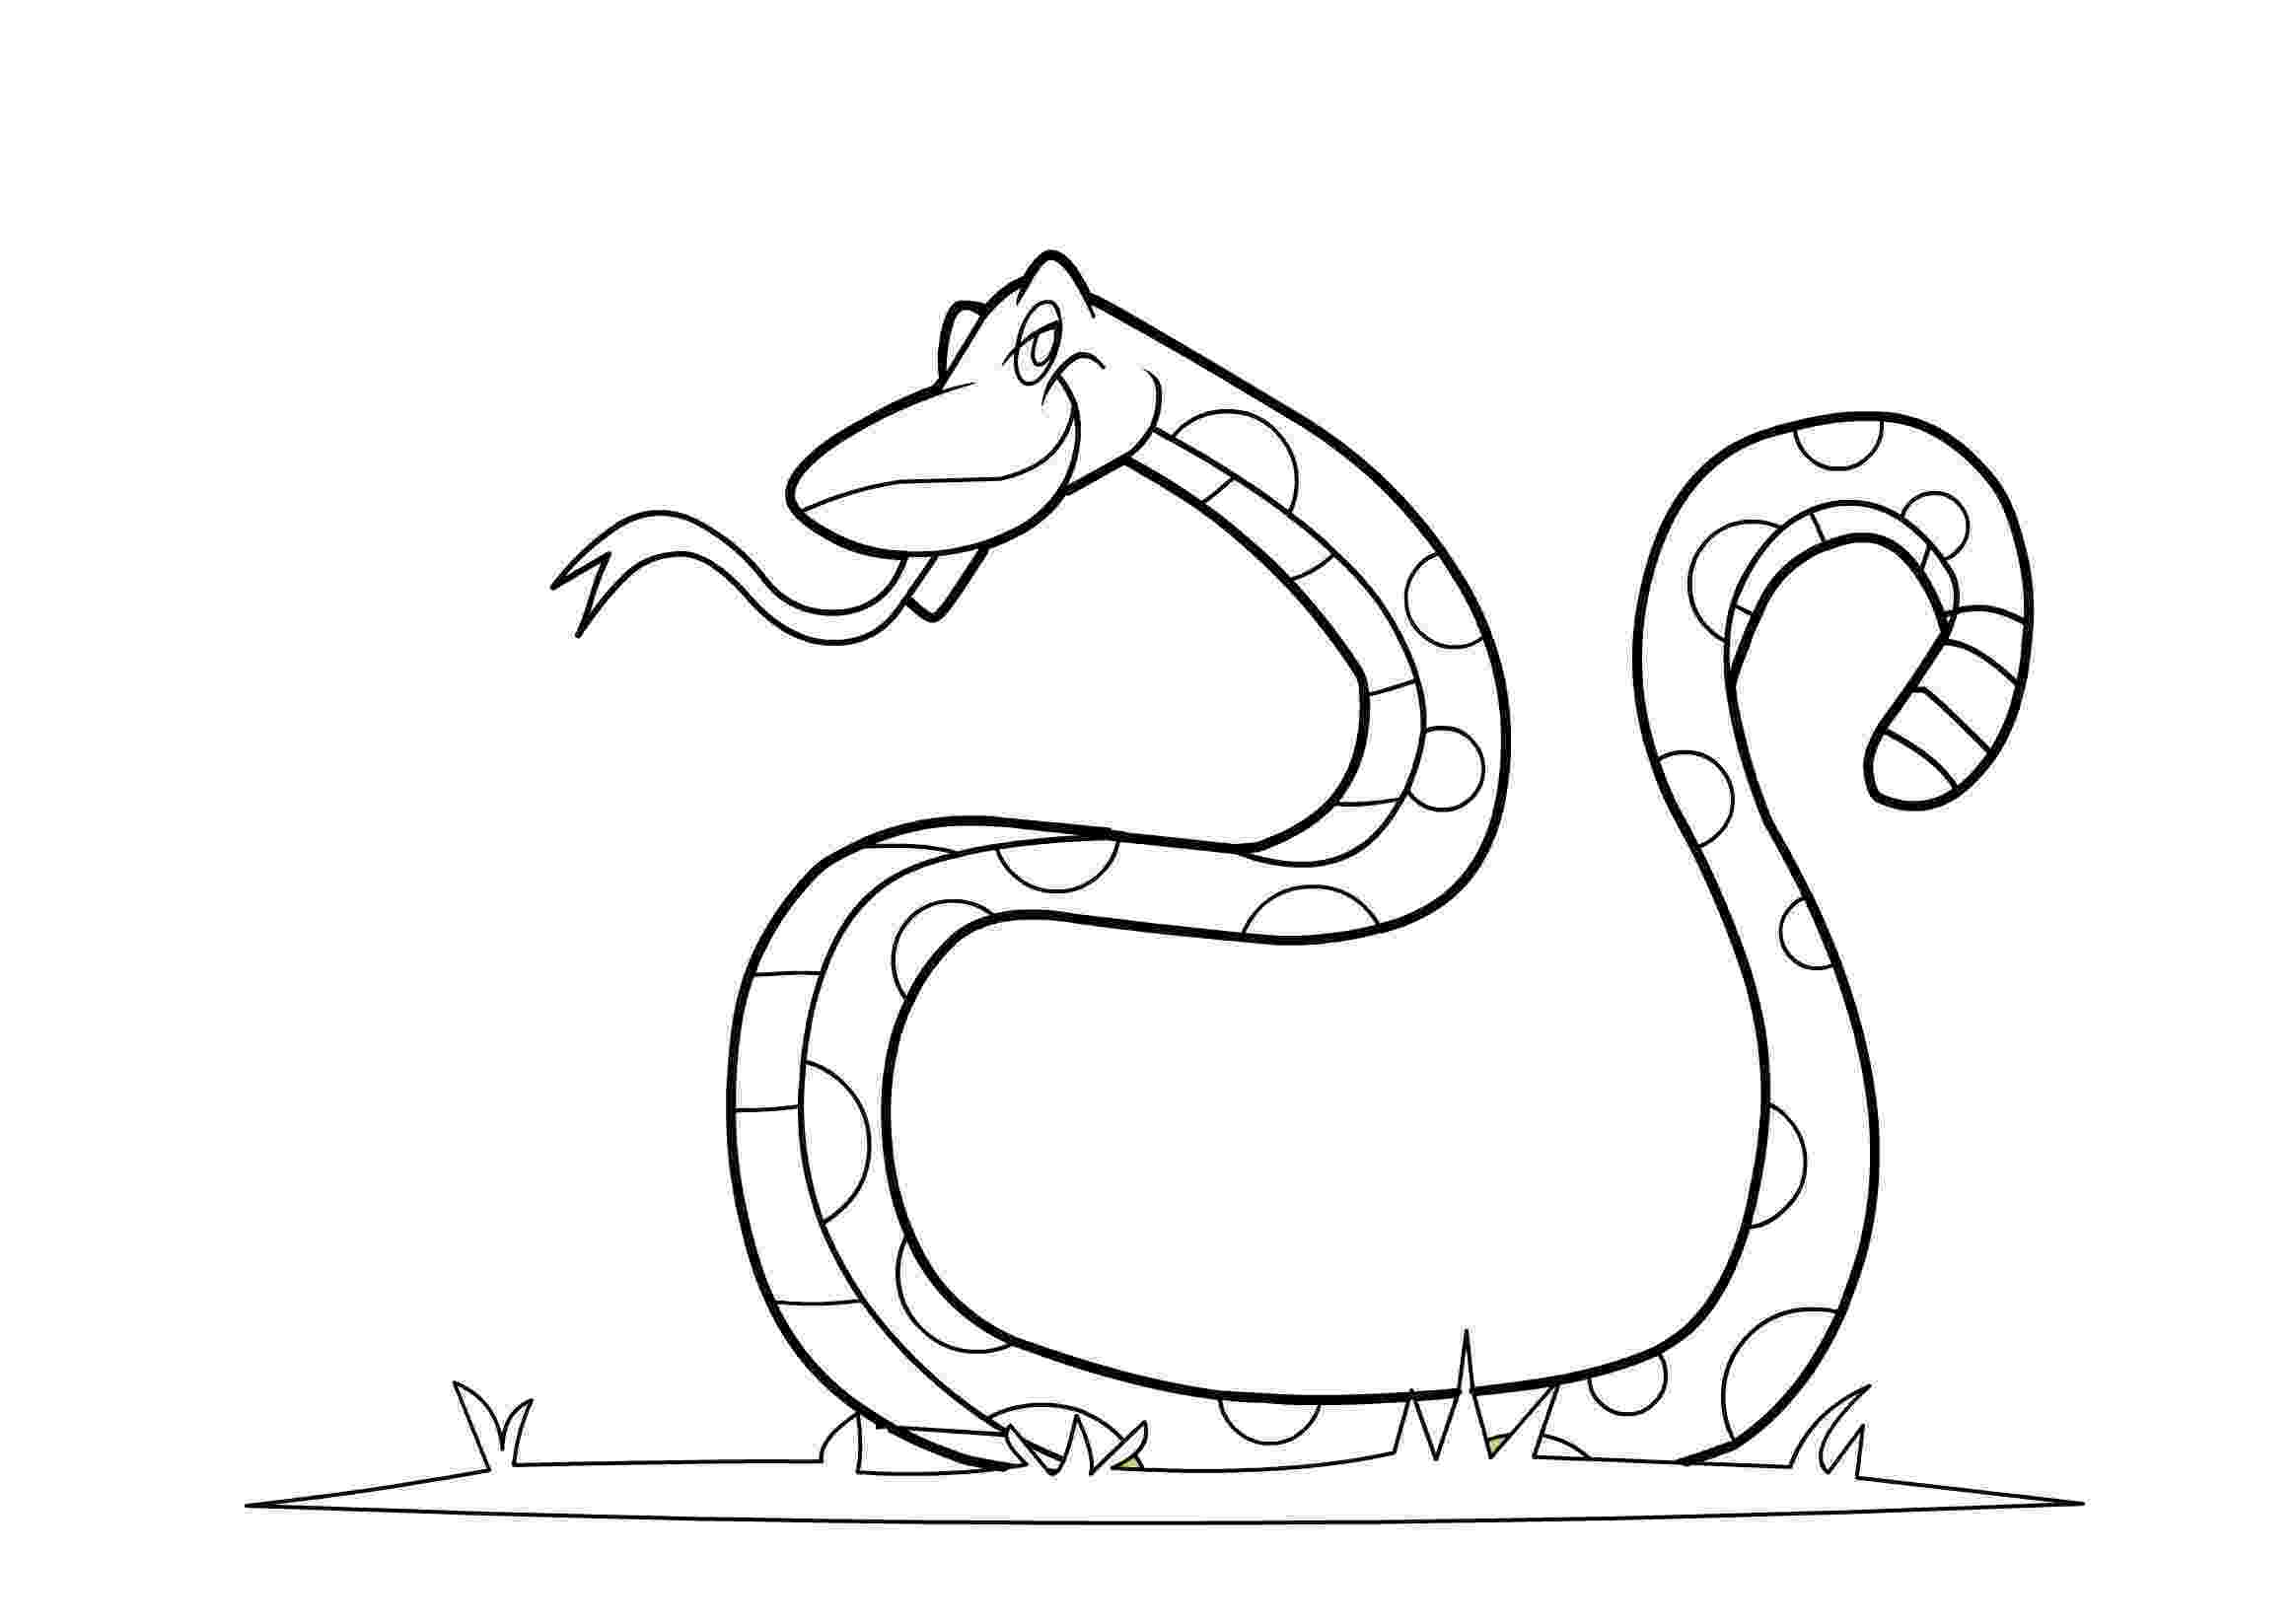 snakes colouring pages free printable snake coloring pages for kids snakes colouring pages